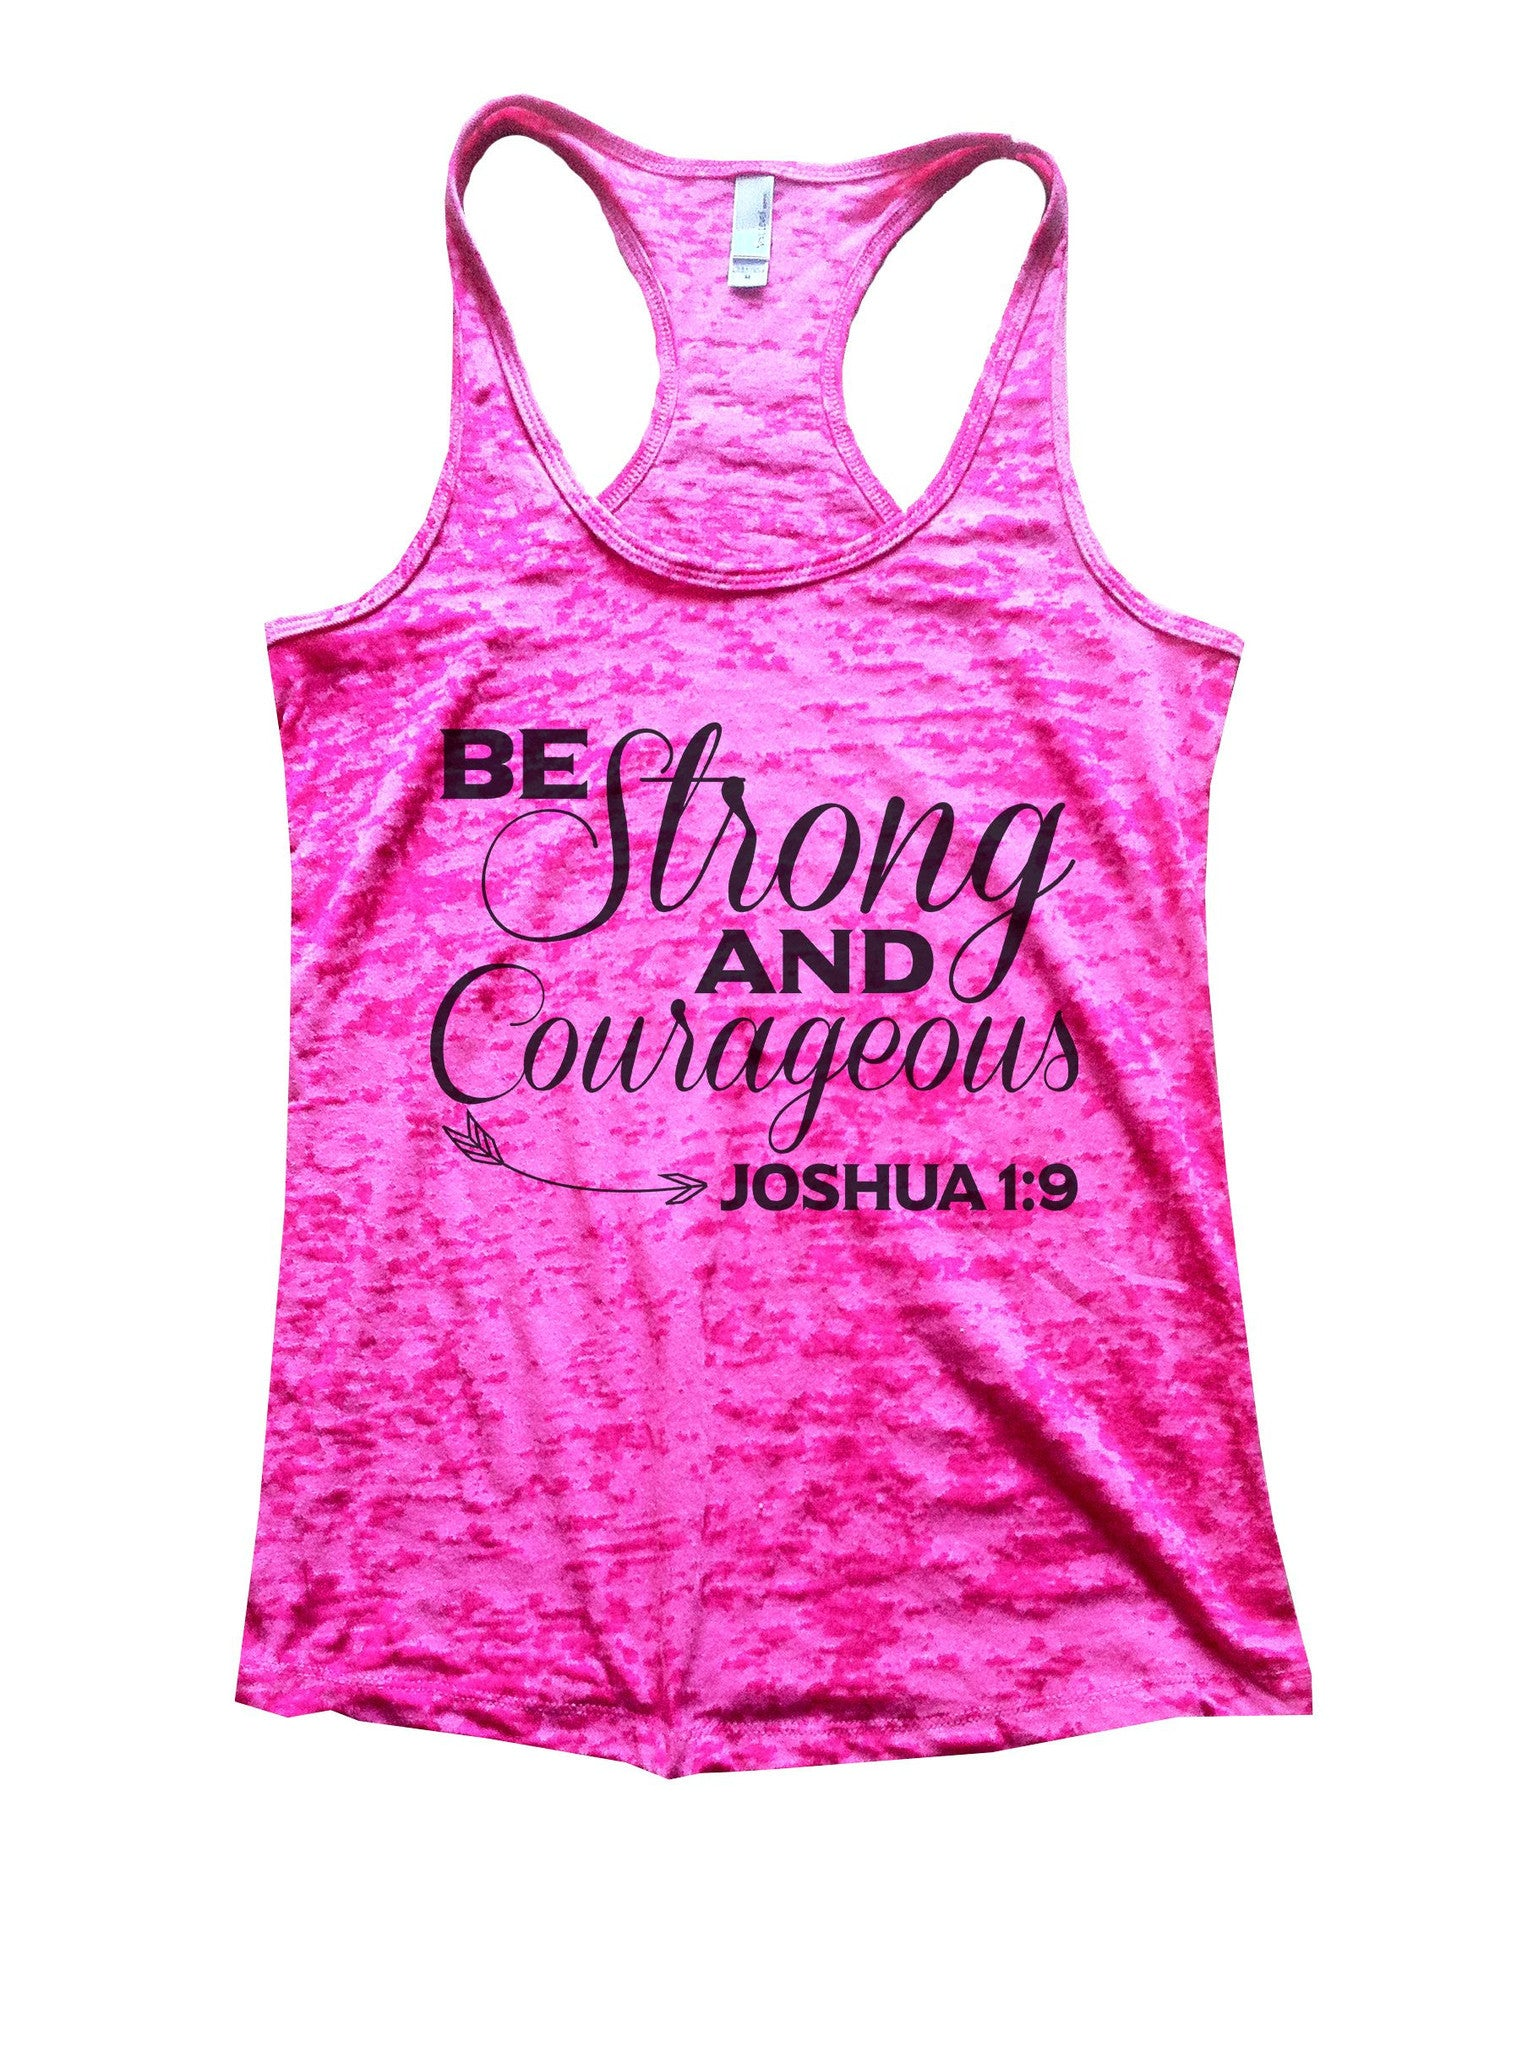 Be Strong And Courageous Joshua 1:9 Burnout Tank Top By BurnoutTankTops.com - 948 - Funny Shirts Tank Tops Burnouts and Triblends  - 5